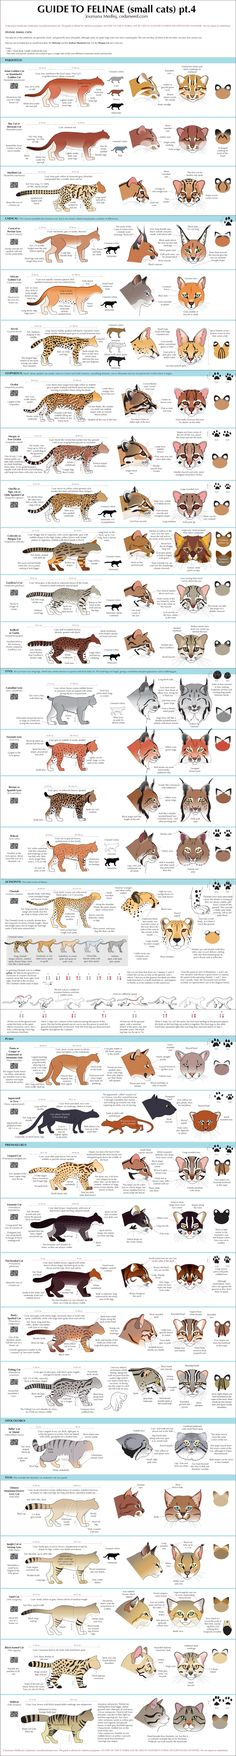 Guide to small #cat http://www.pinterest.com/jamesmarsano/animal-feline/